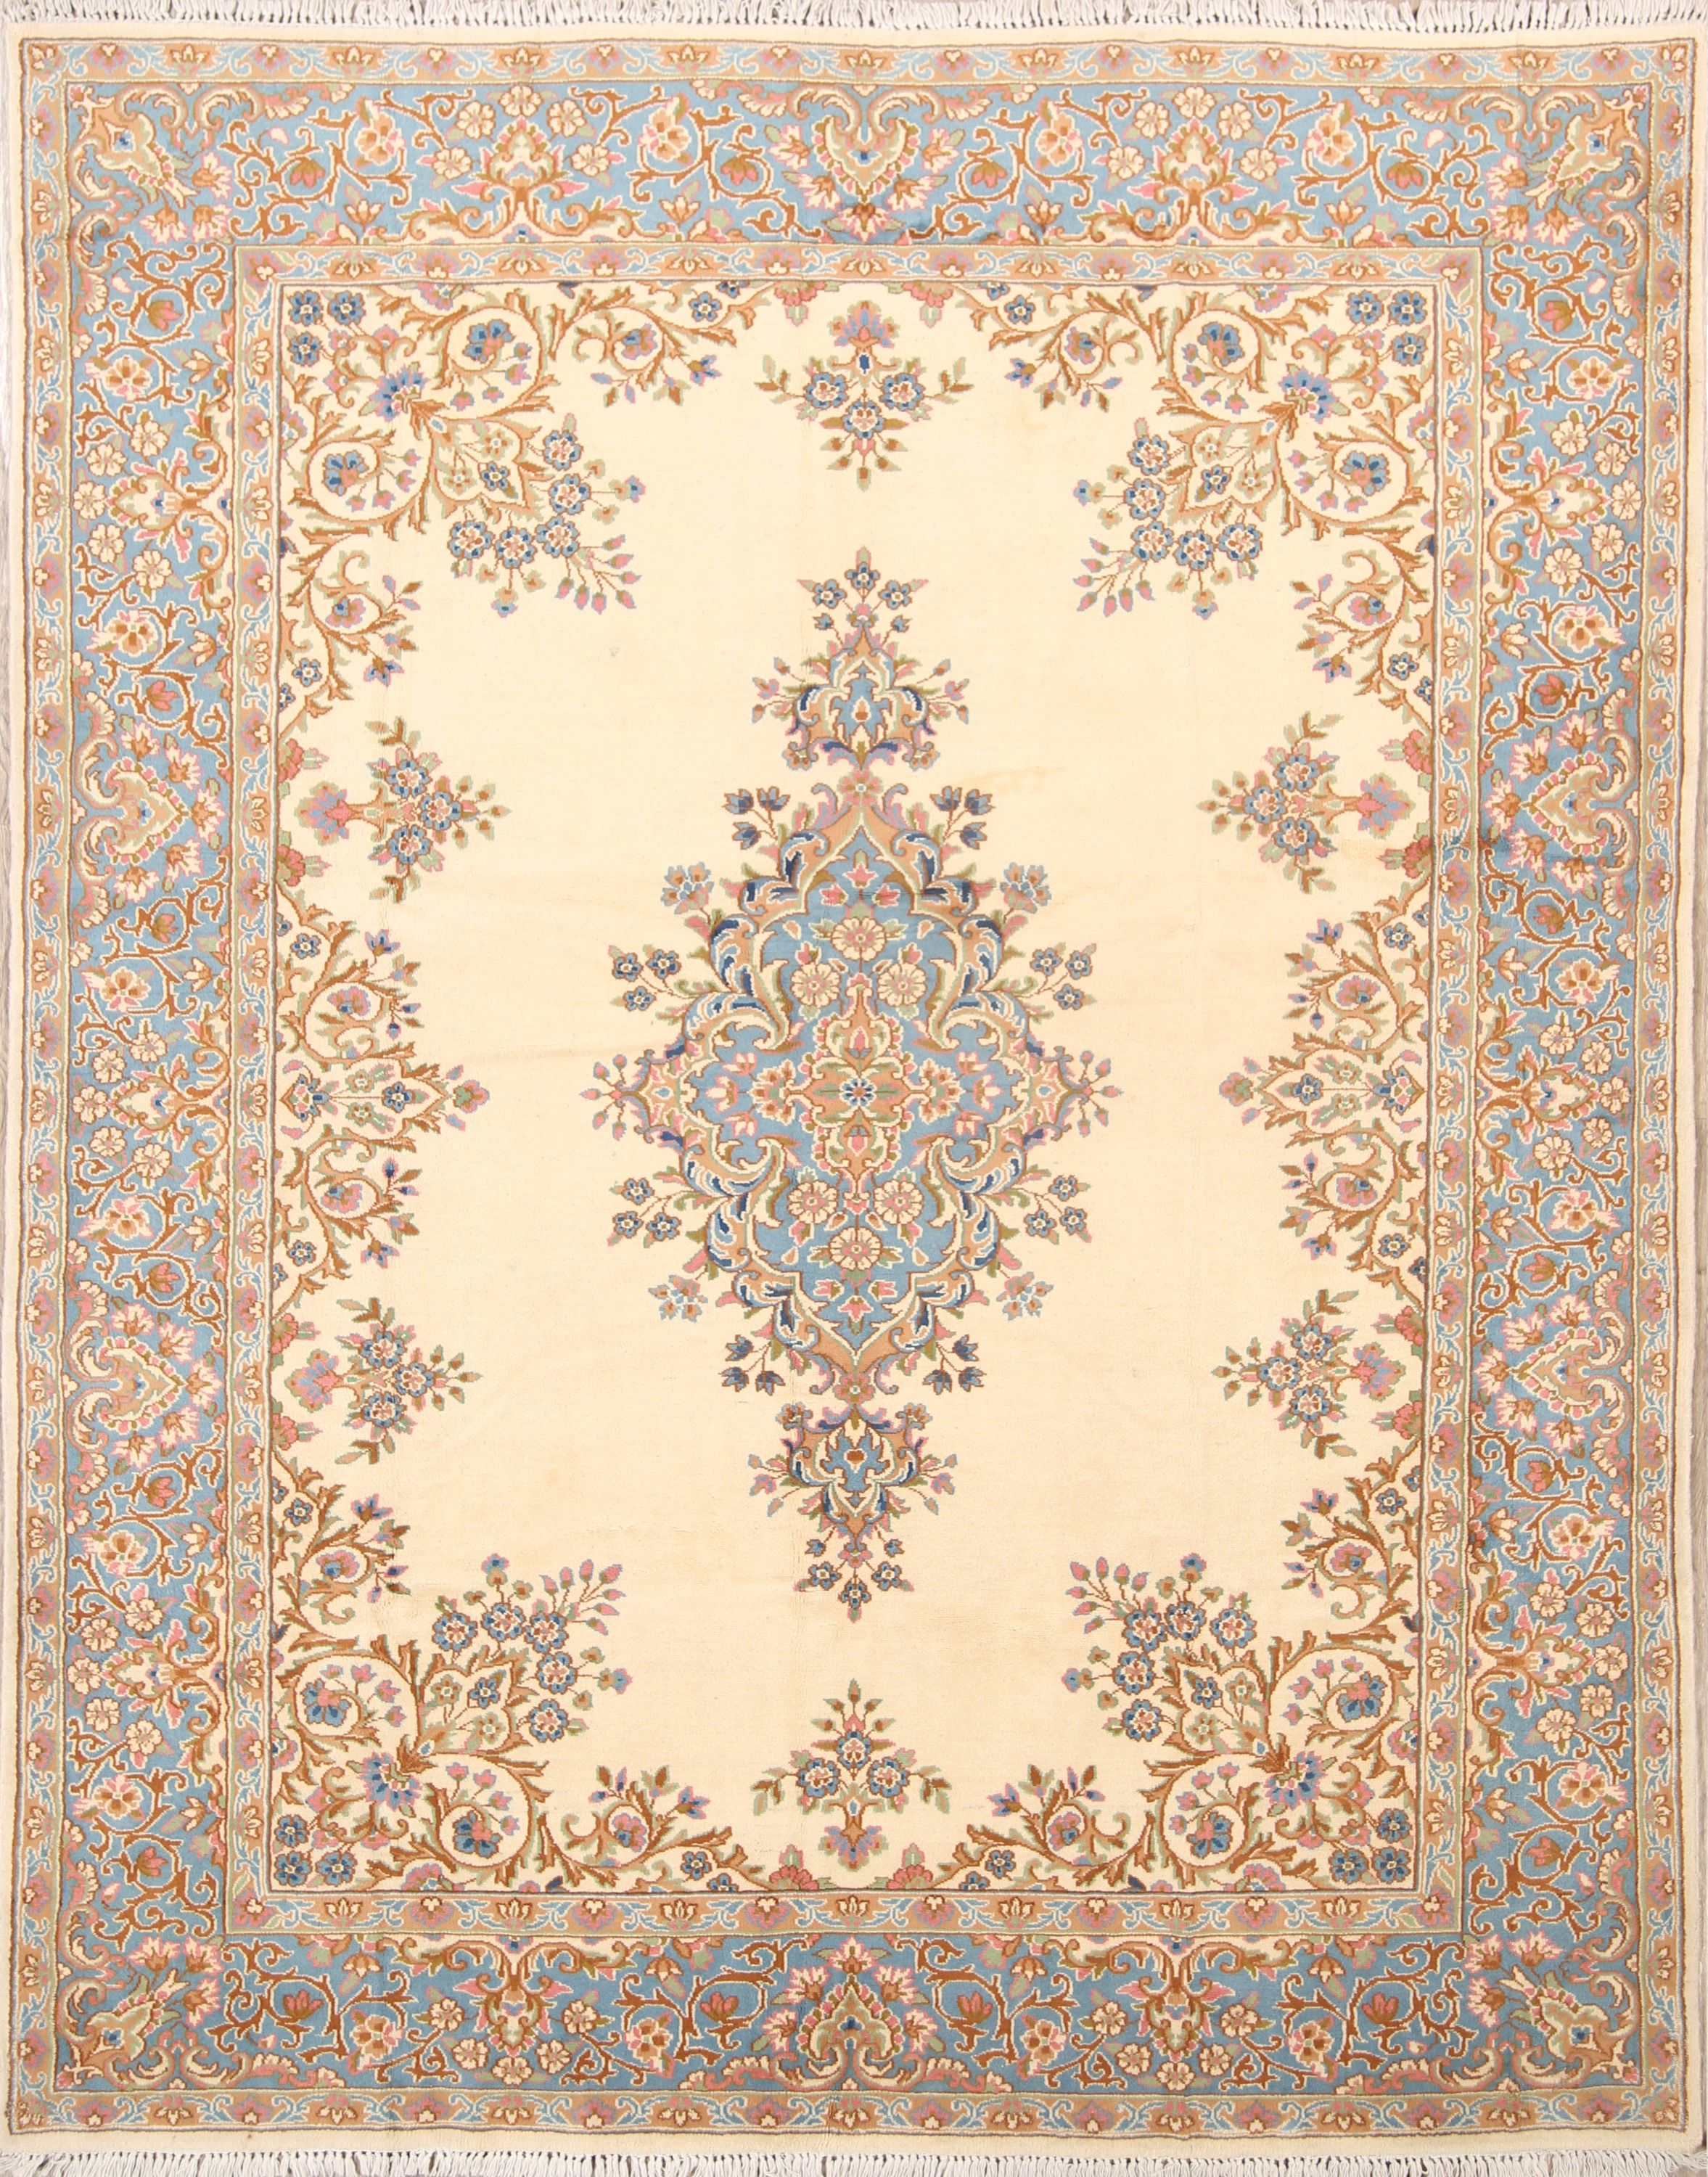 If You Love Calm And Bright Colors Paired With Fl Patterns Then This Kerman Persian Rug Is A Perfect Choice For